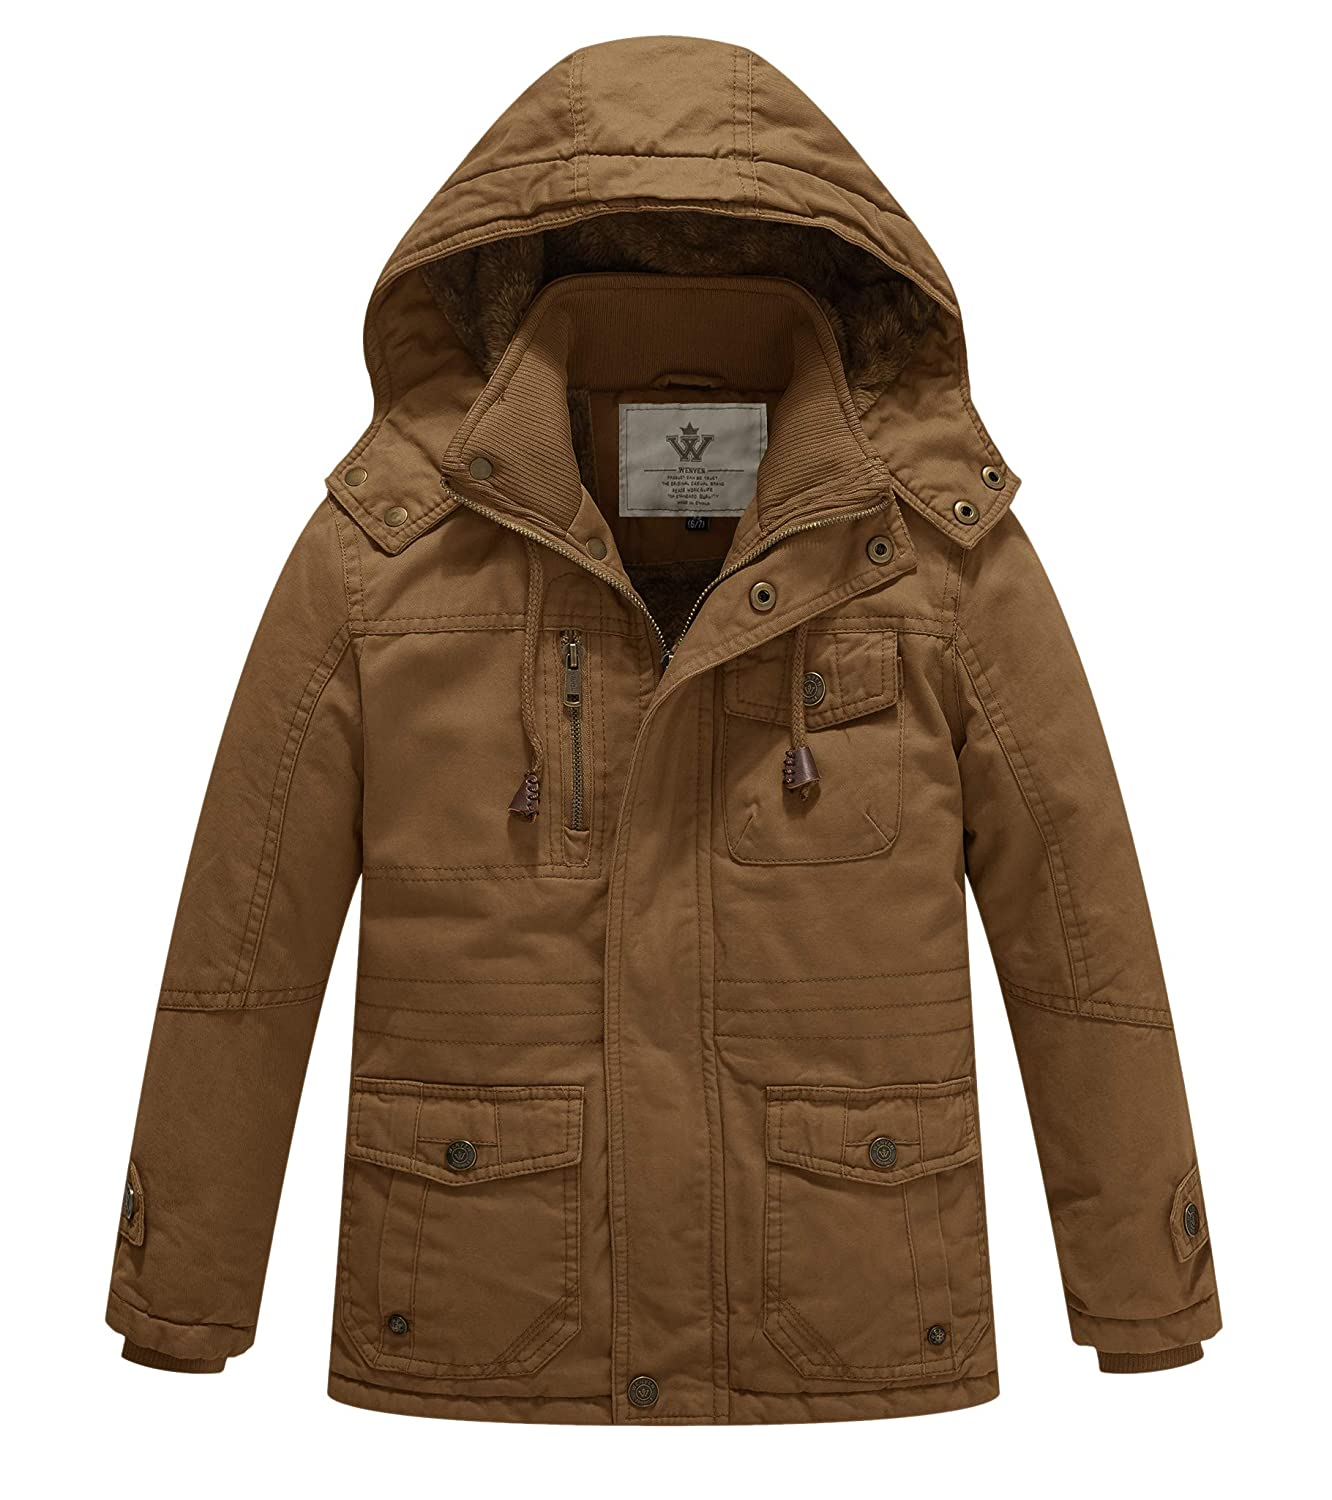 WenVen Boy's and Girl's Active Jacket with Removable Hood